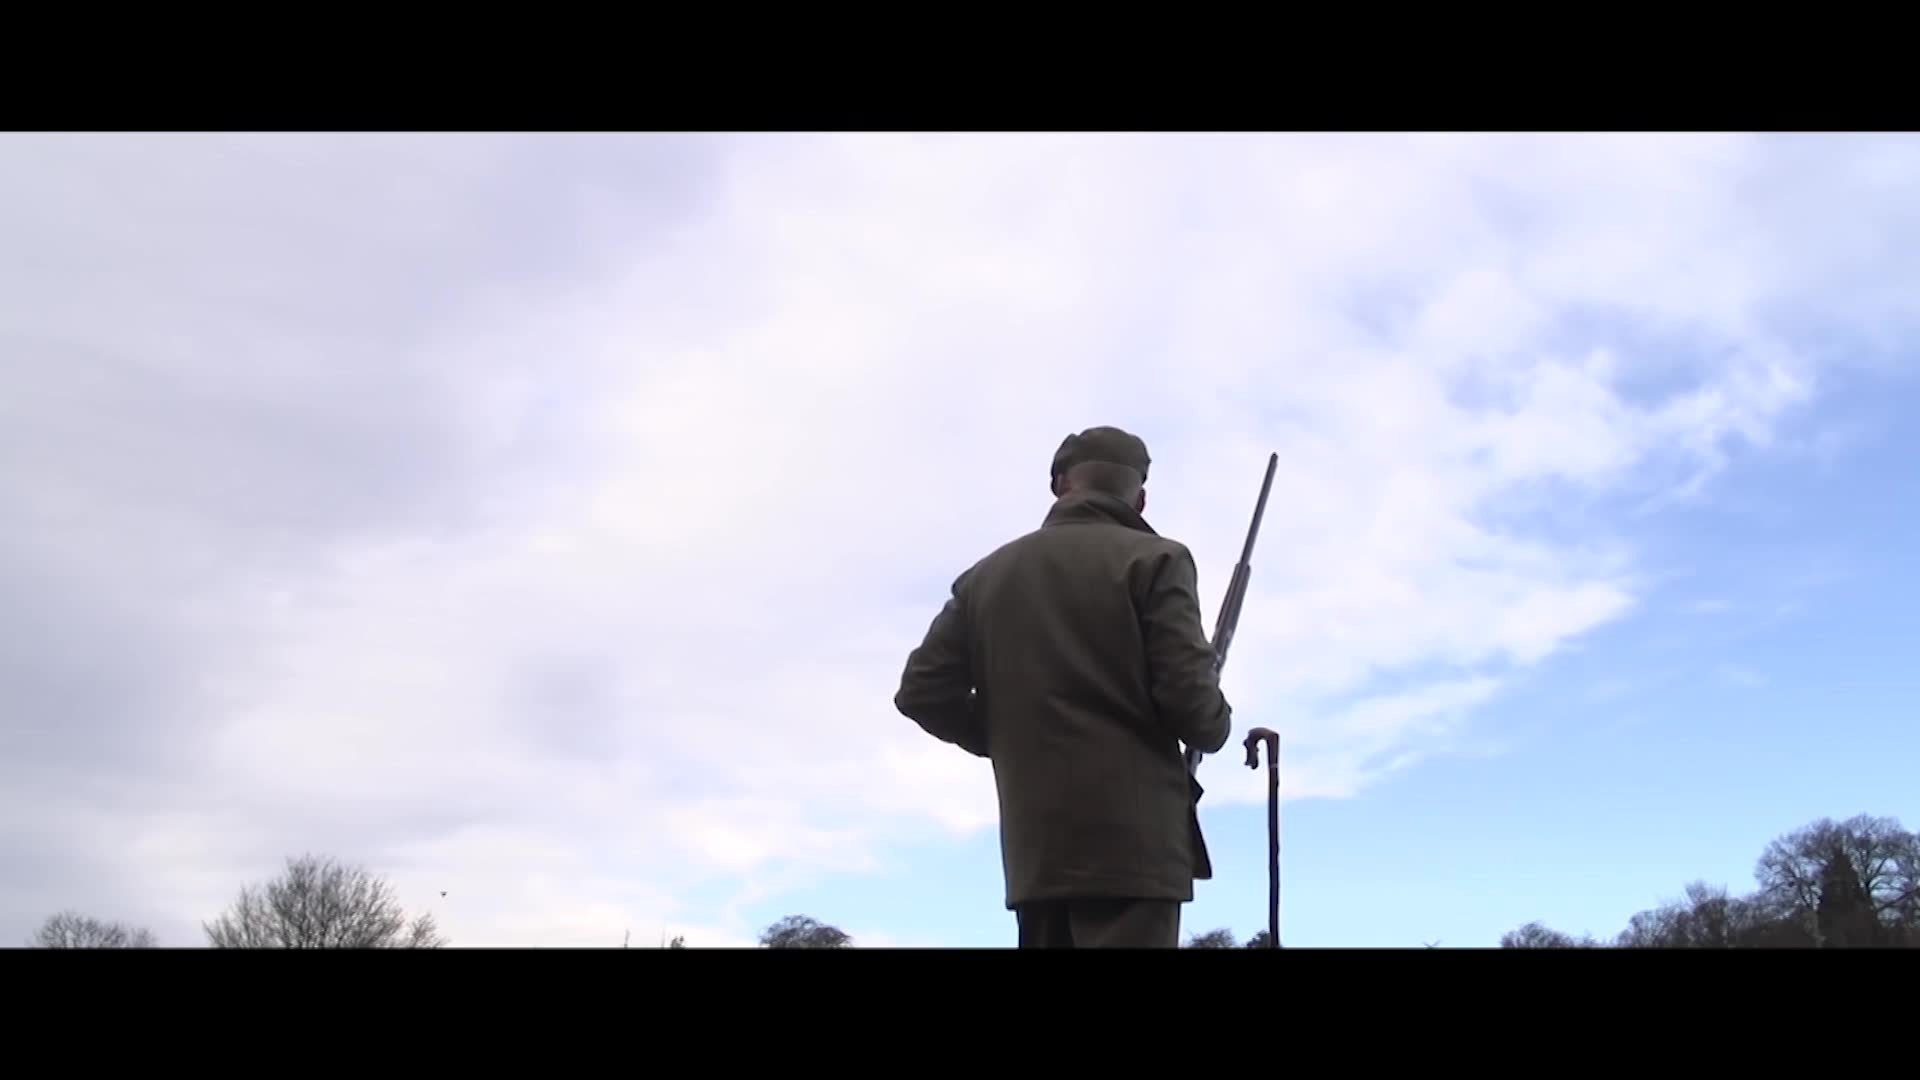 Driven Pheasant Shooting: A Way of Life